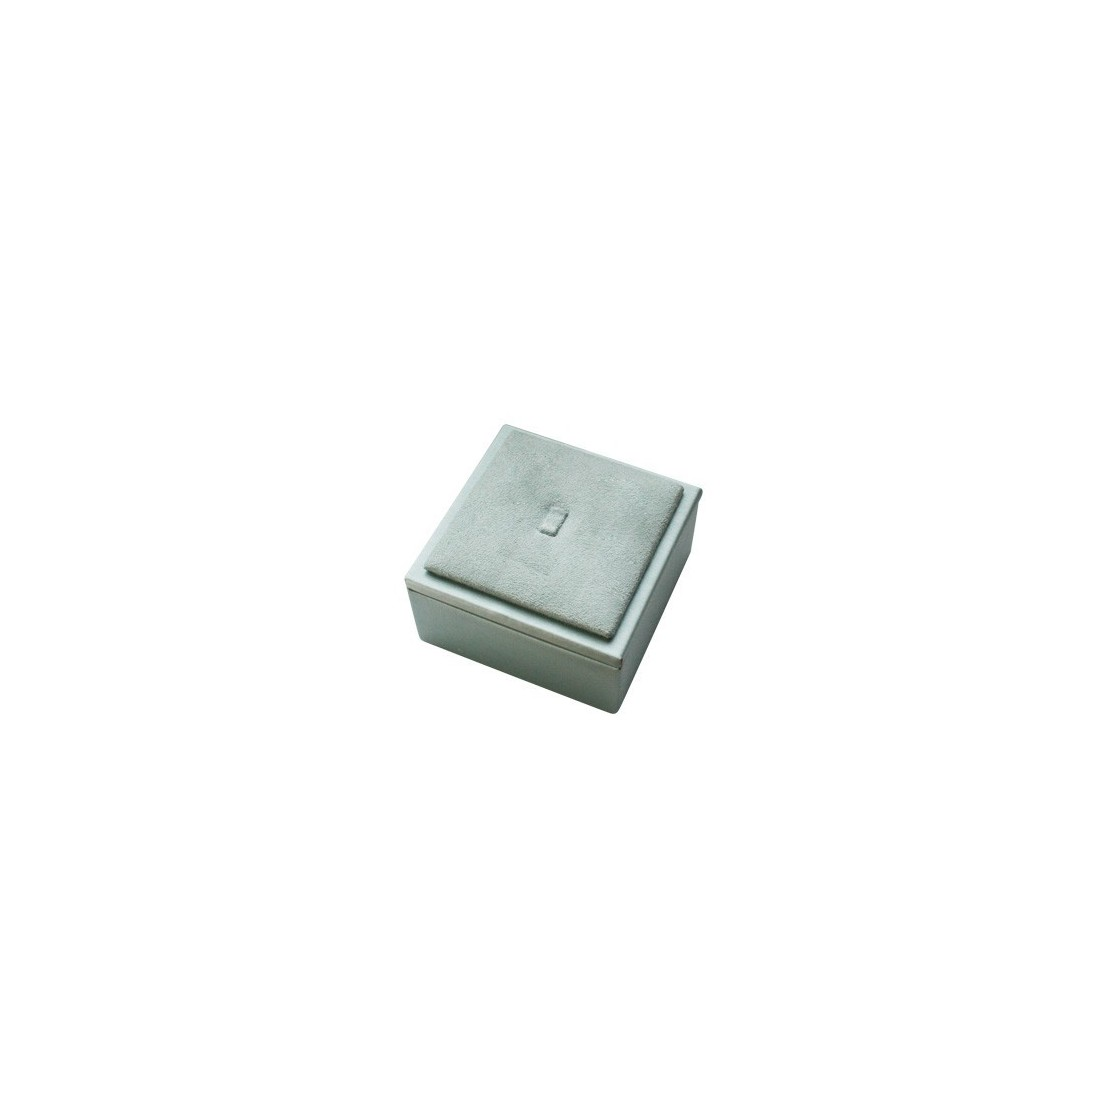 Display Stand for Ring, L